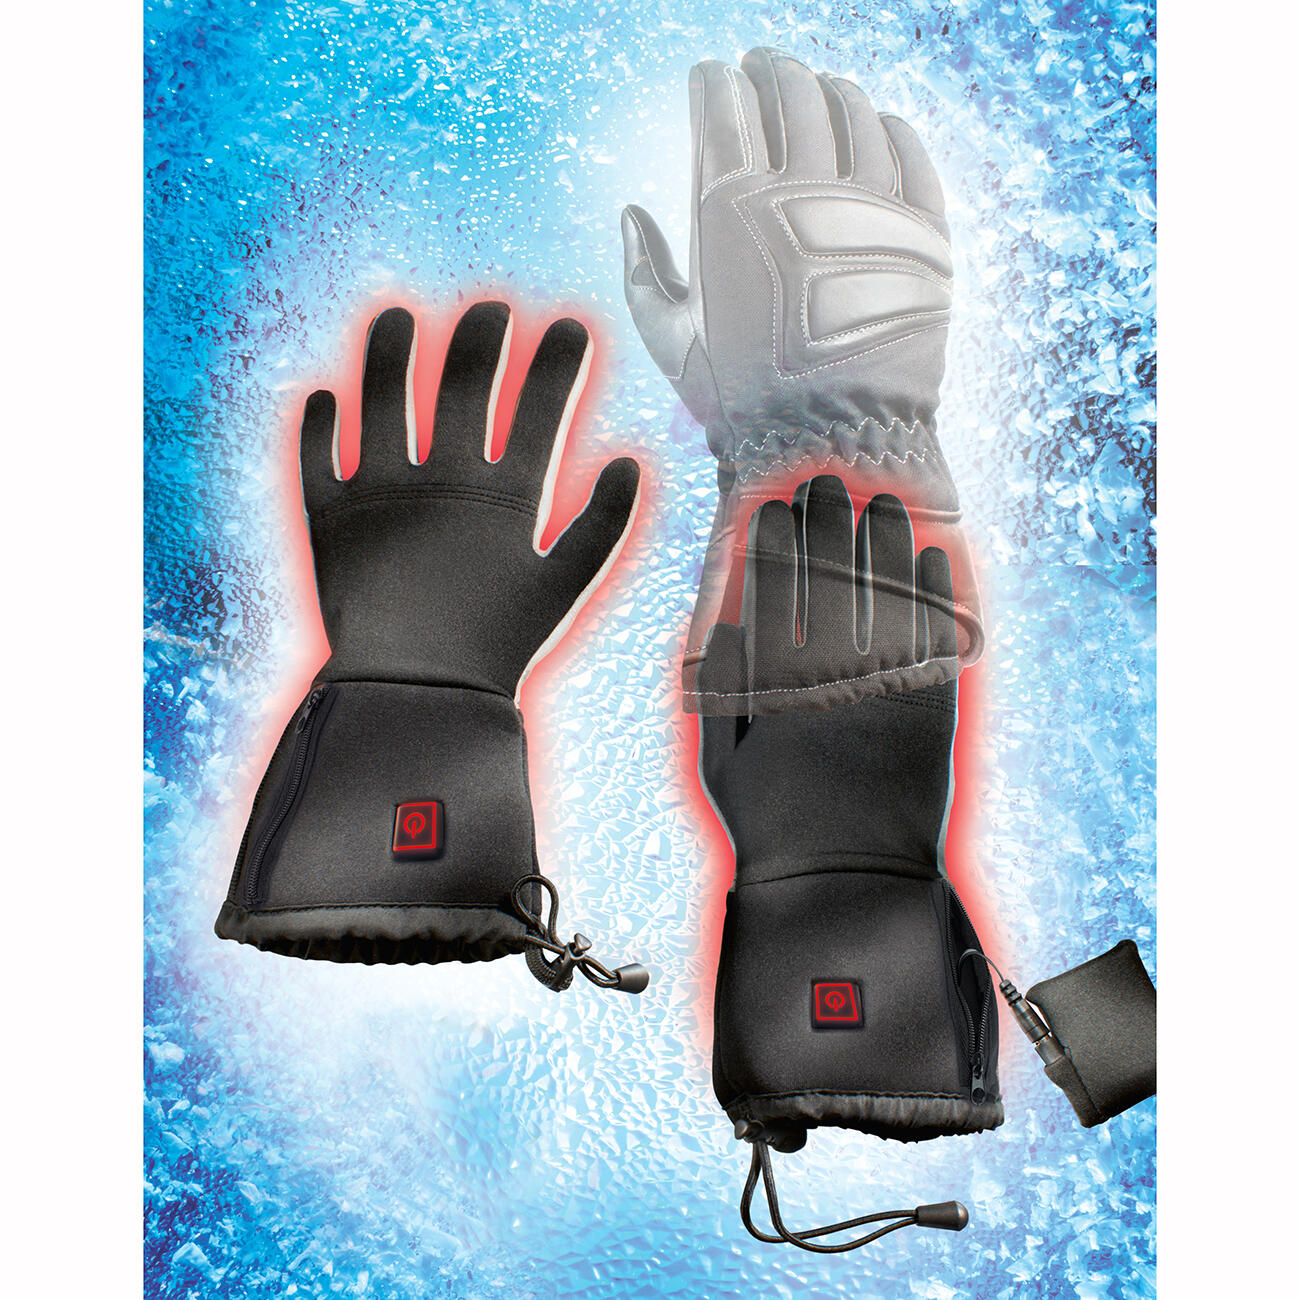 thermo gloves beheizbare unterziehhandschuhe s m kaufen. Black Bedroom Furniture Sets. Home Design Ideas